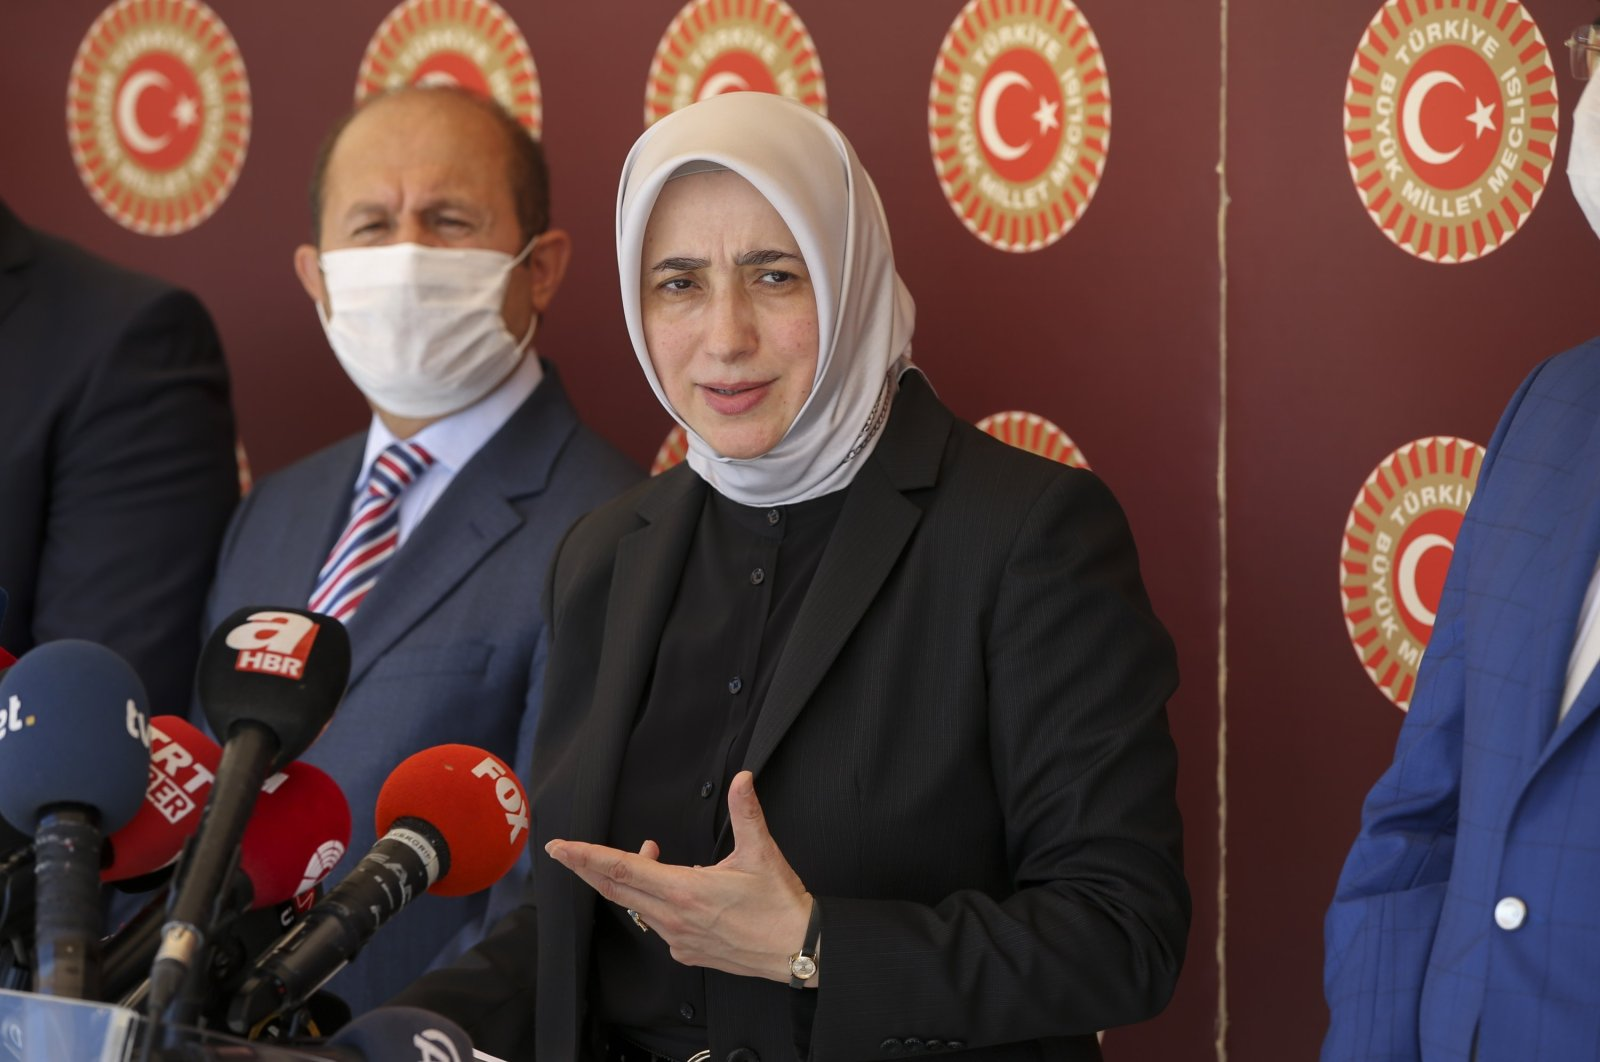 Özlem Zengin, the ruling Justice and Development Party (AK Party) deputy chair, during a press conference at the parliament in capital Ankara, July 21, 2020. (AA Photo)